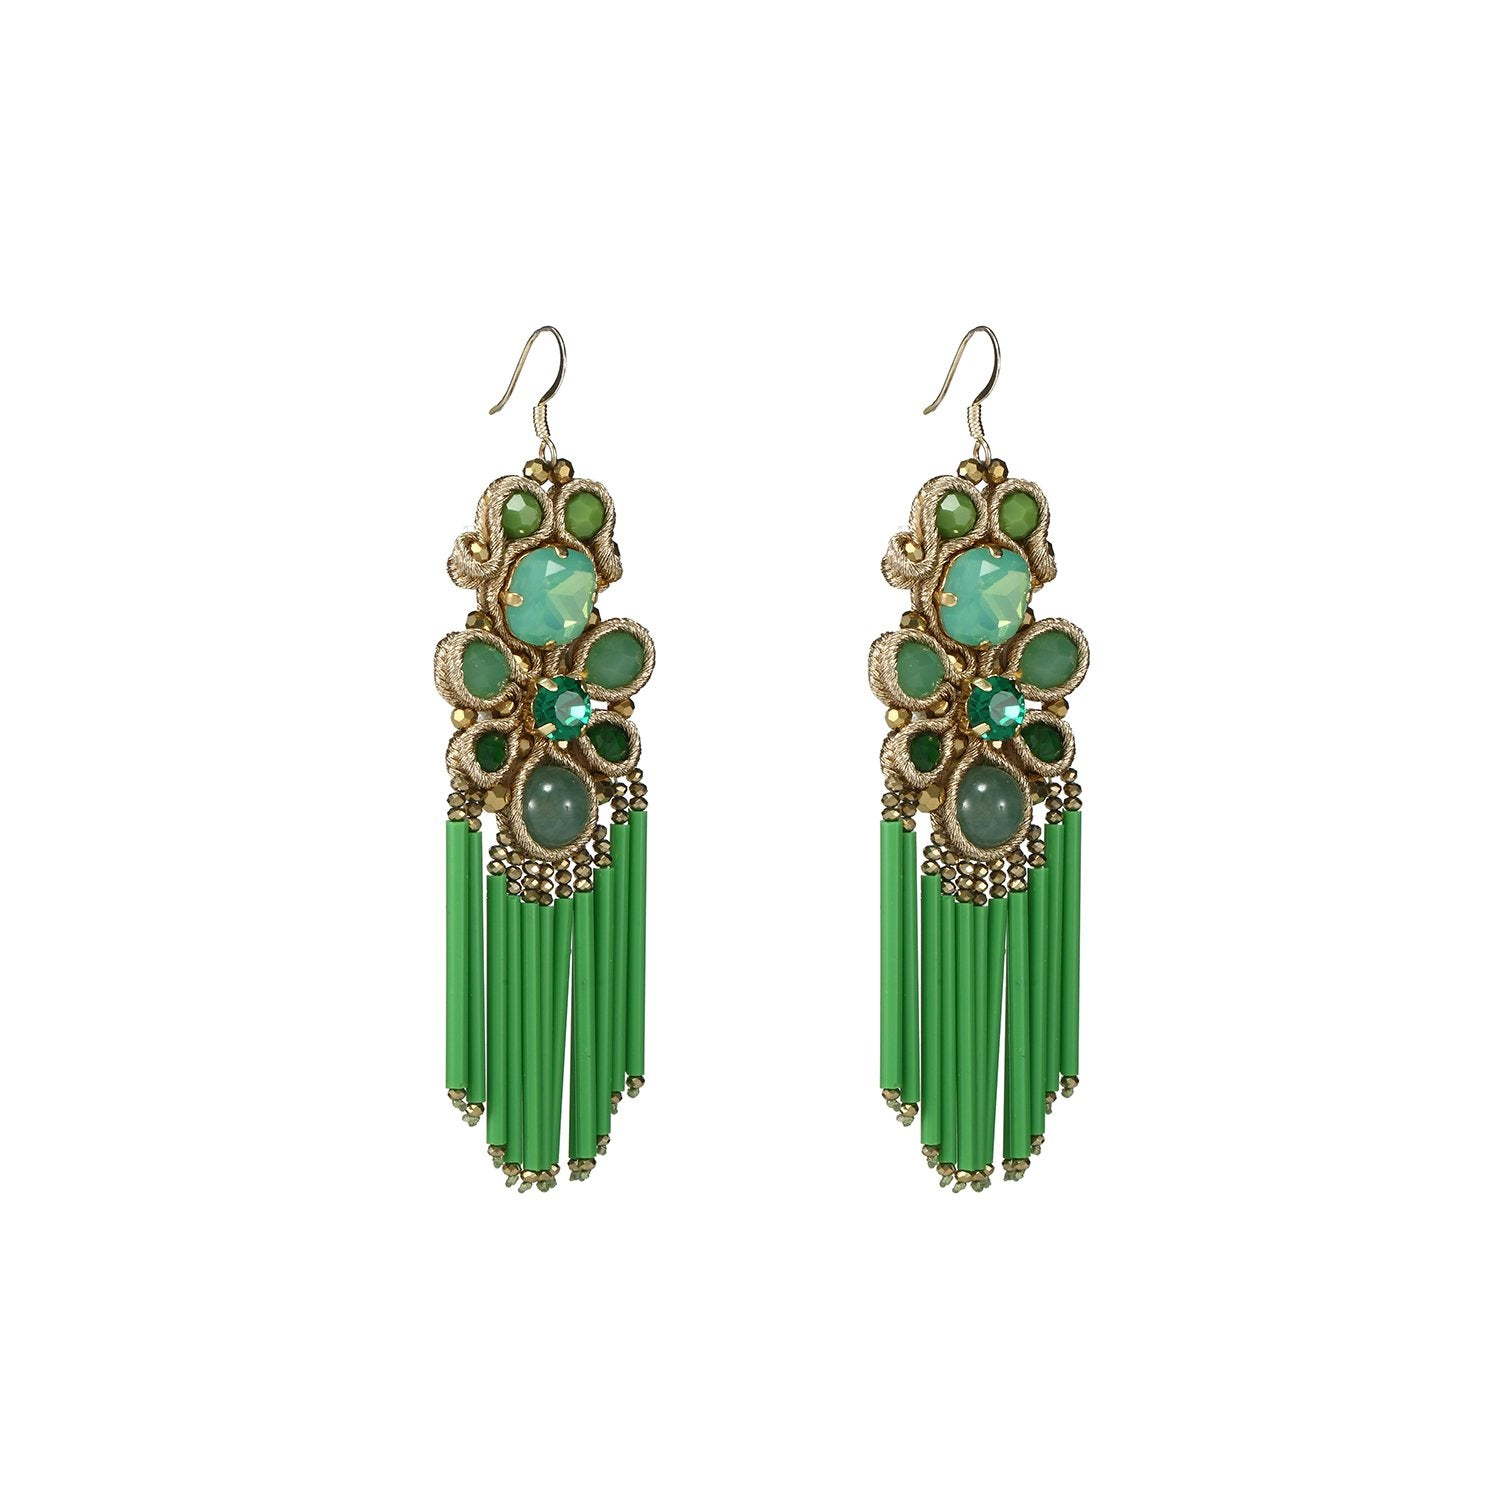 Green Handmade Earrings